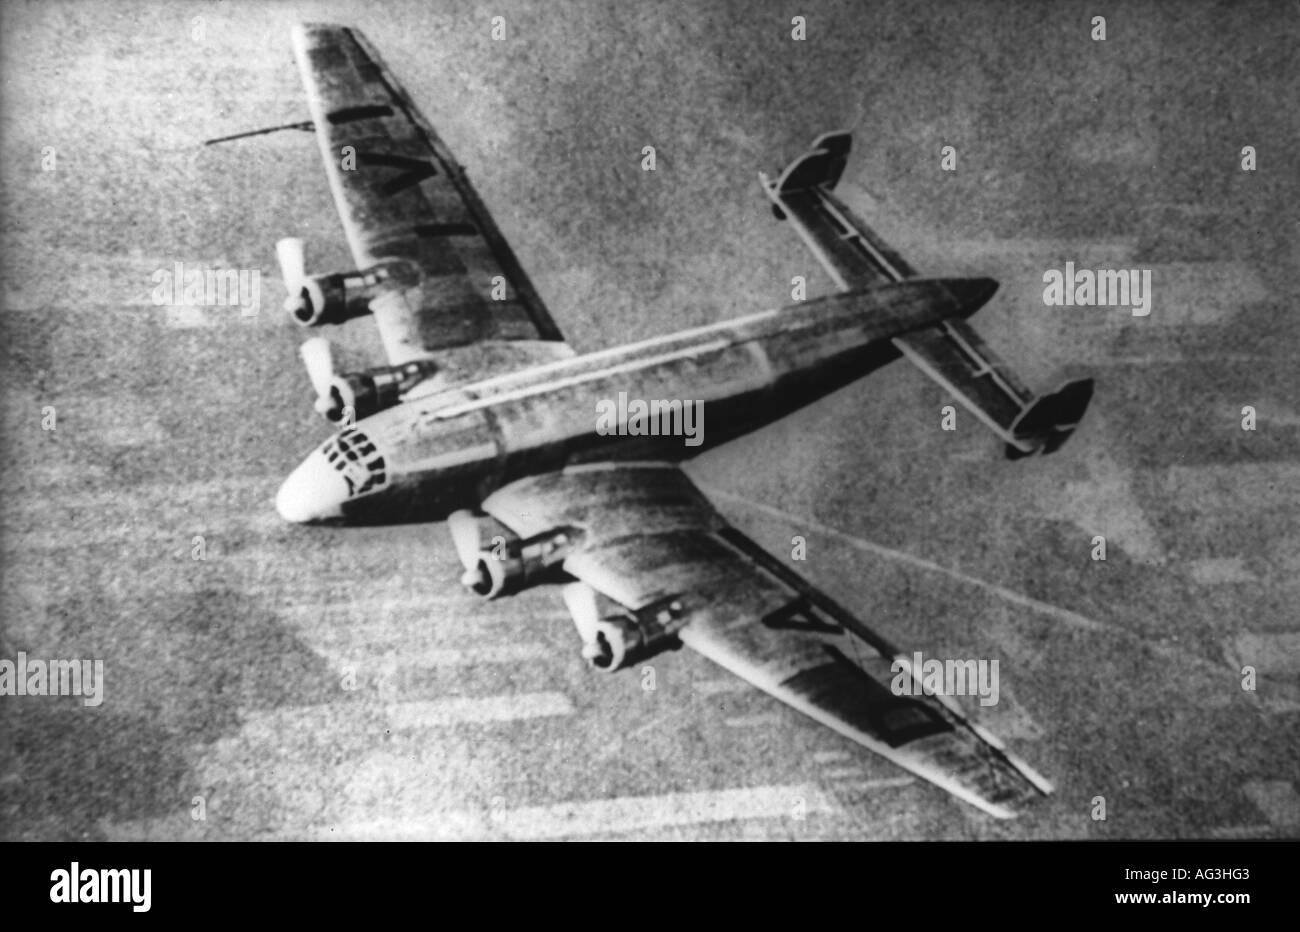 aviation, aircraft, airliners, Junkers JU-90, airliner, airplane, aircraft, Germany, JU 90, 1938, historic, historical, 20th century, 1930s, Additional-Rights-Clearances-NA - Stock Image